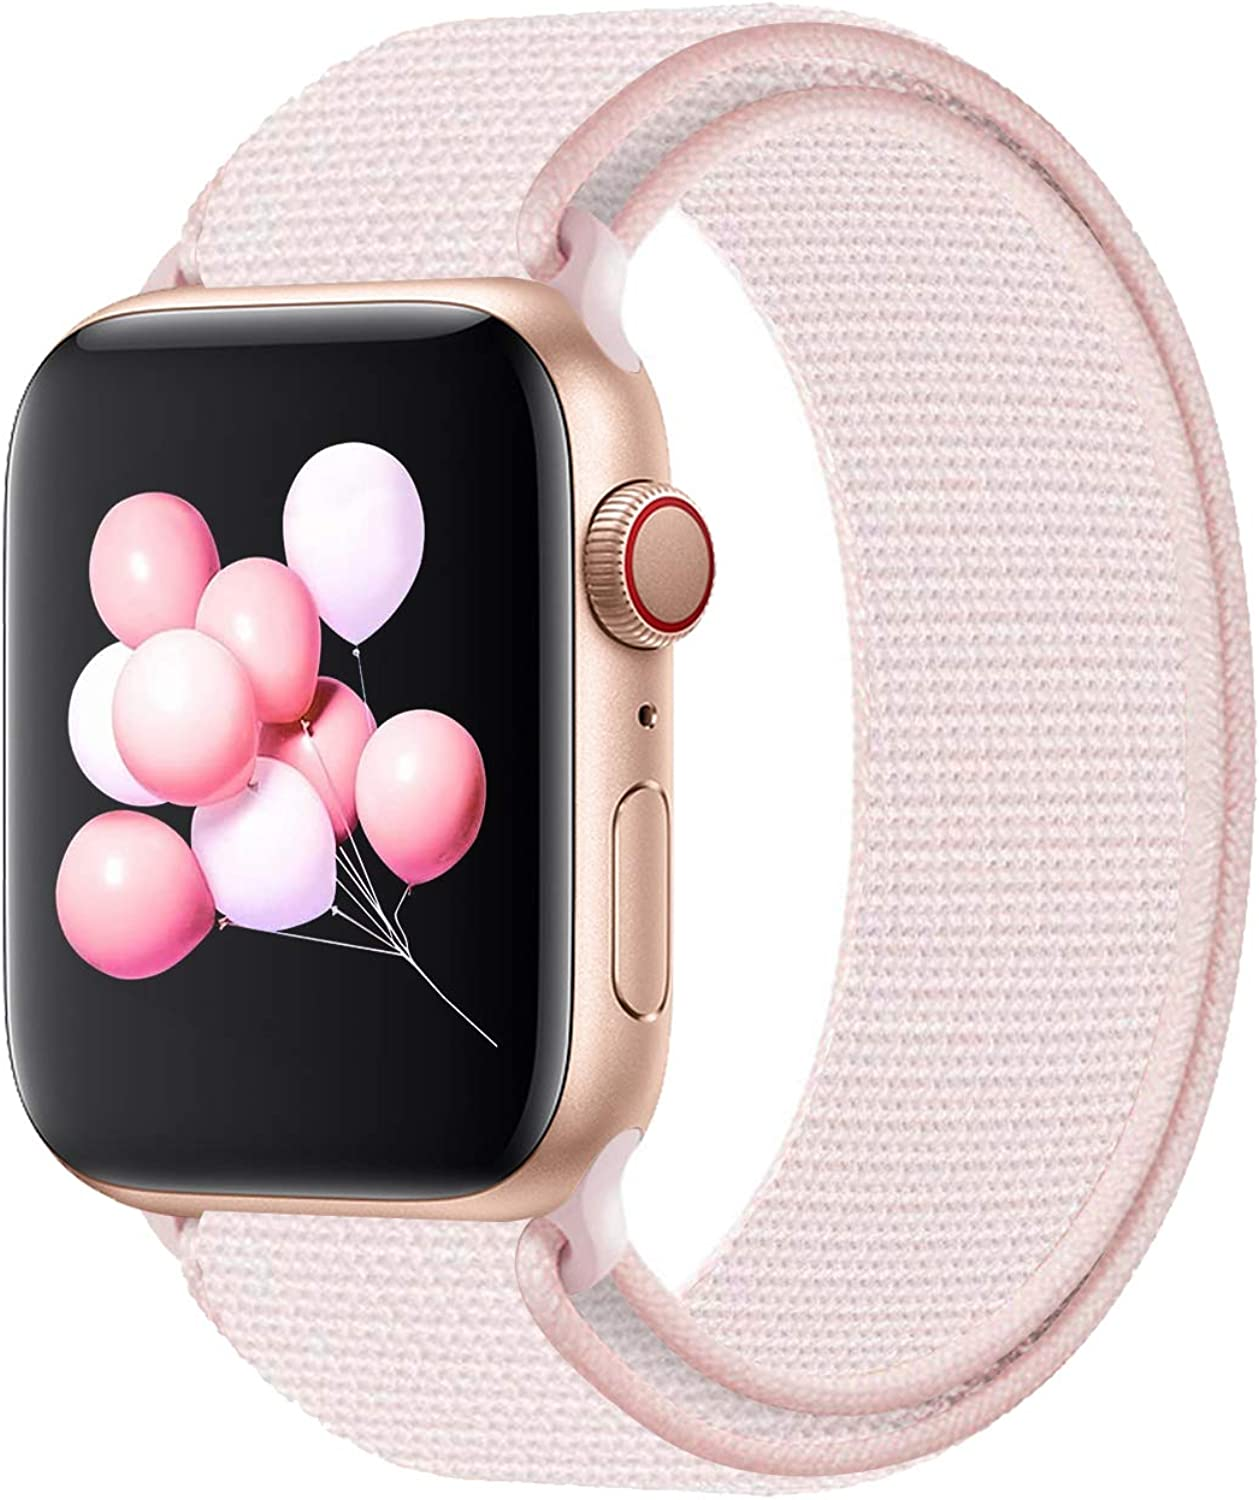 Youther Compatible with for Applle Watch Band 38mm 40mm 42mm 44mm, Soft Adjustable Lightweight Replacement Wristbands Compatible with for iWatch Series 6 5 4 3 2 1 SE